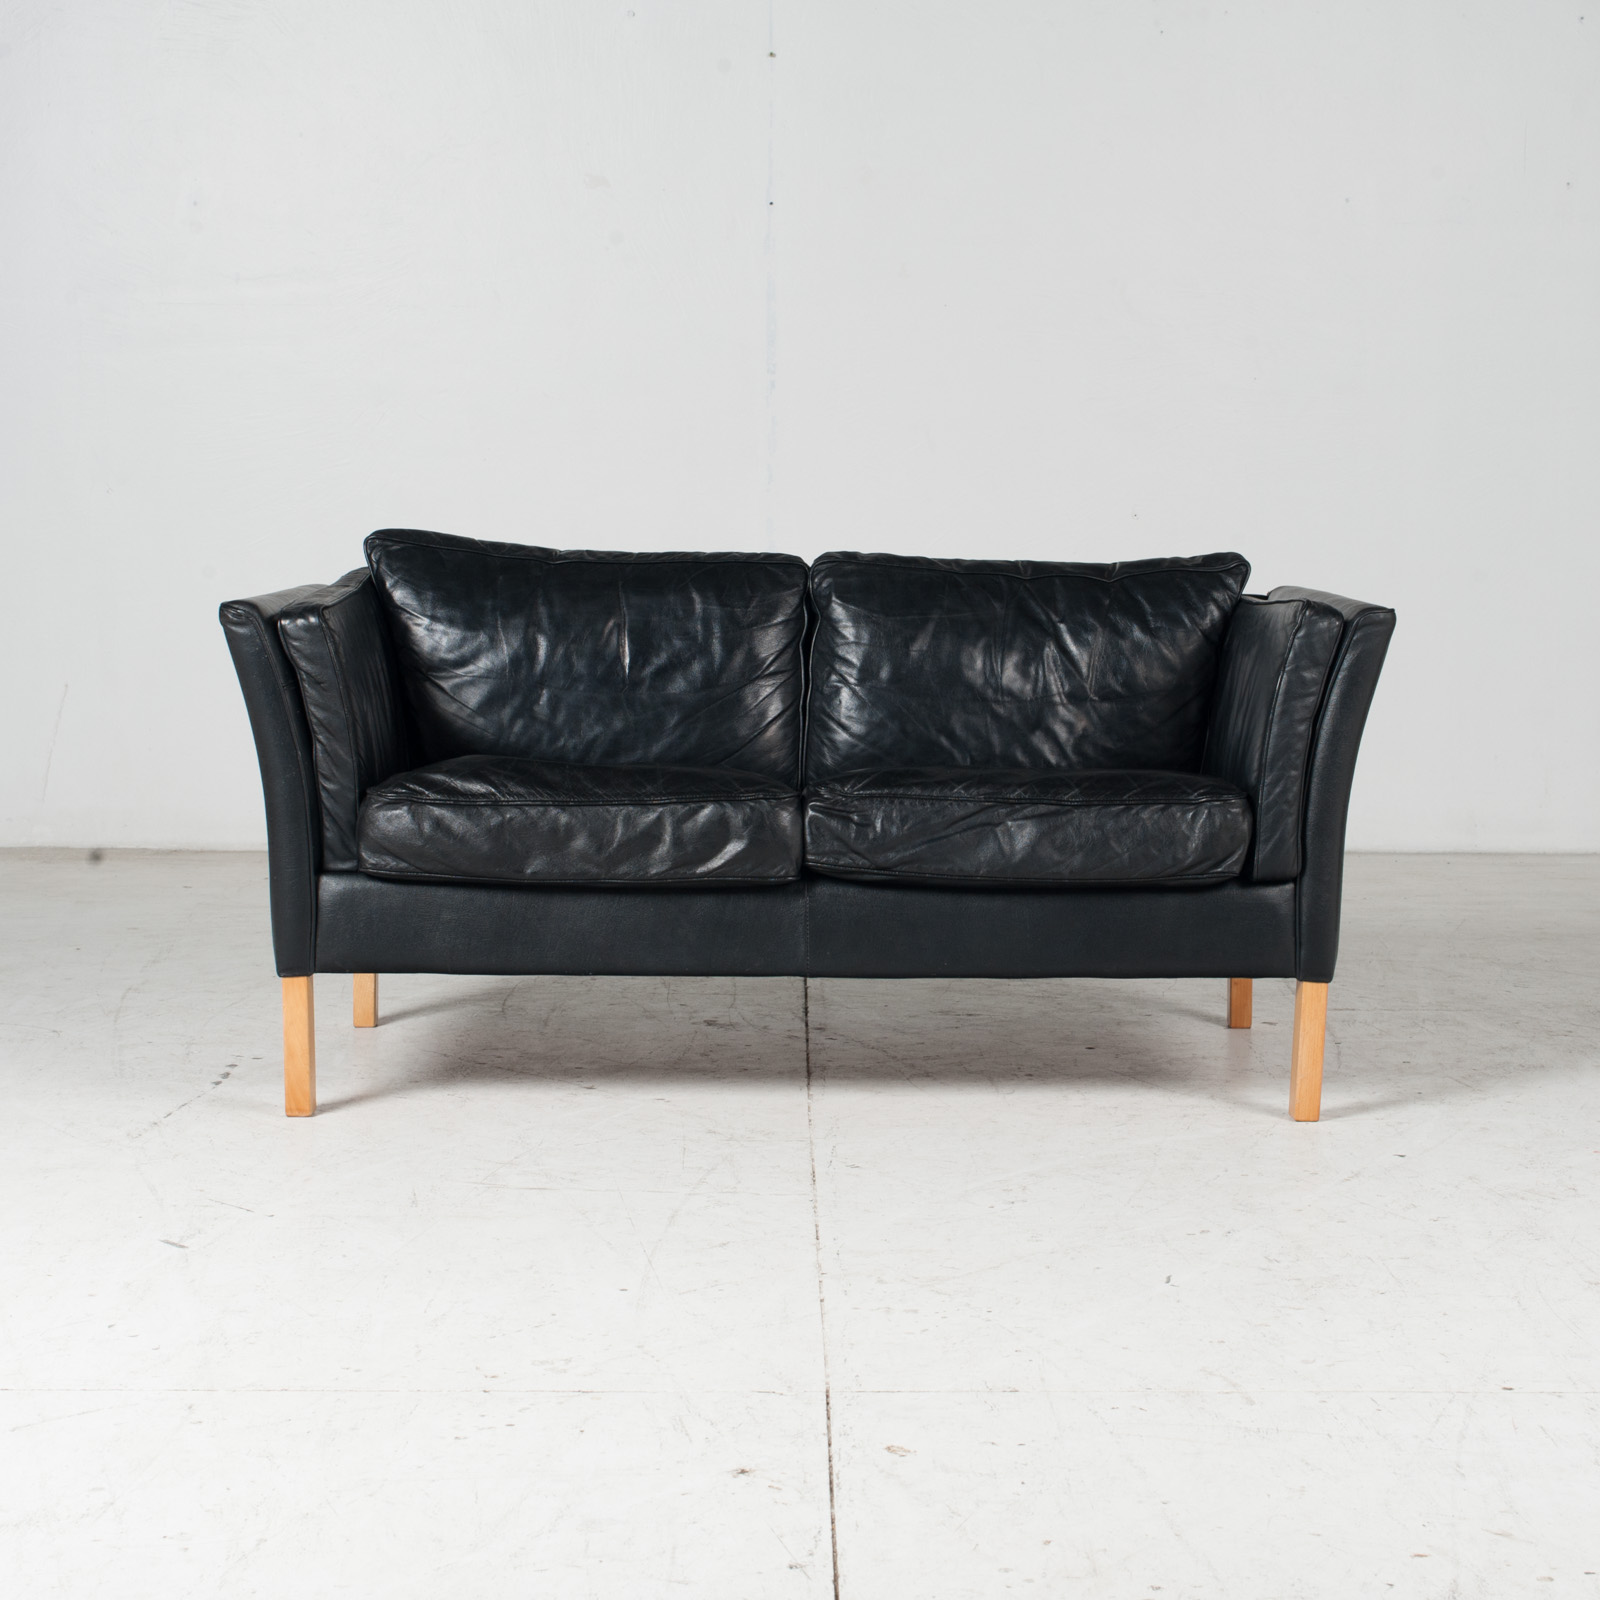 2 Seat Sofa By Stouby In Black Leather With Beech Legs, 1960s, Denmark 1